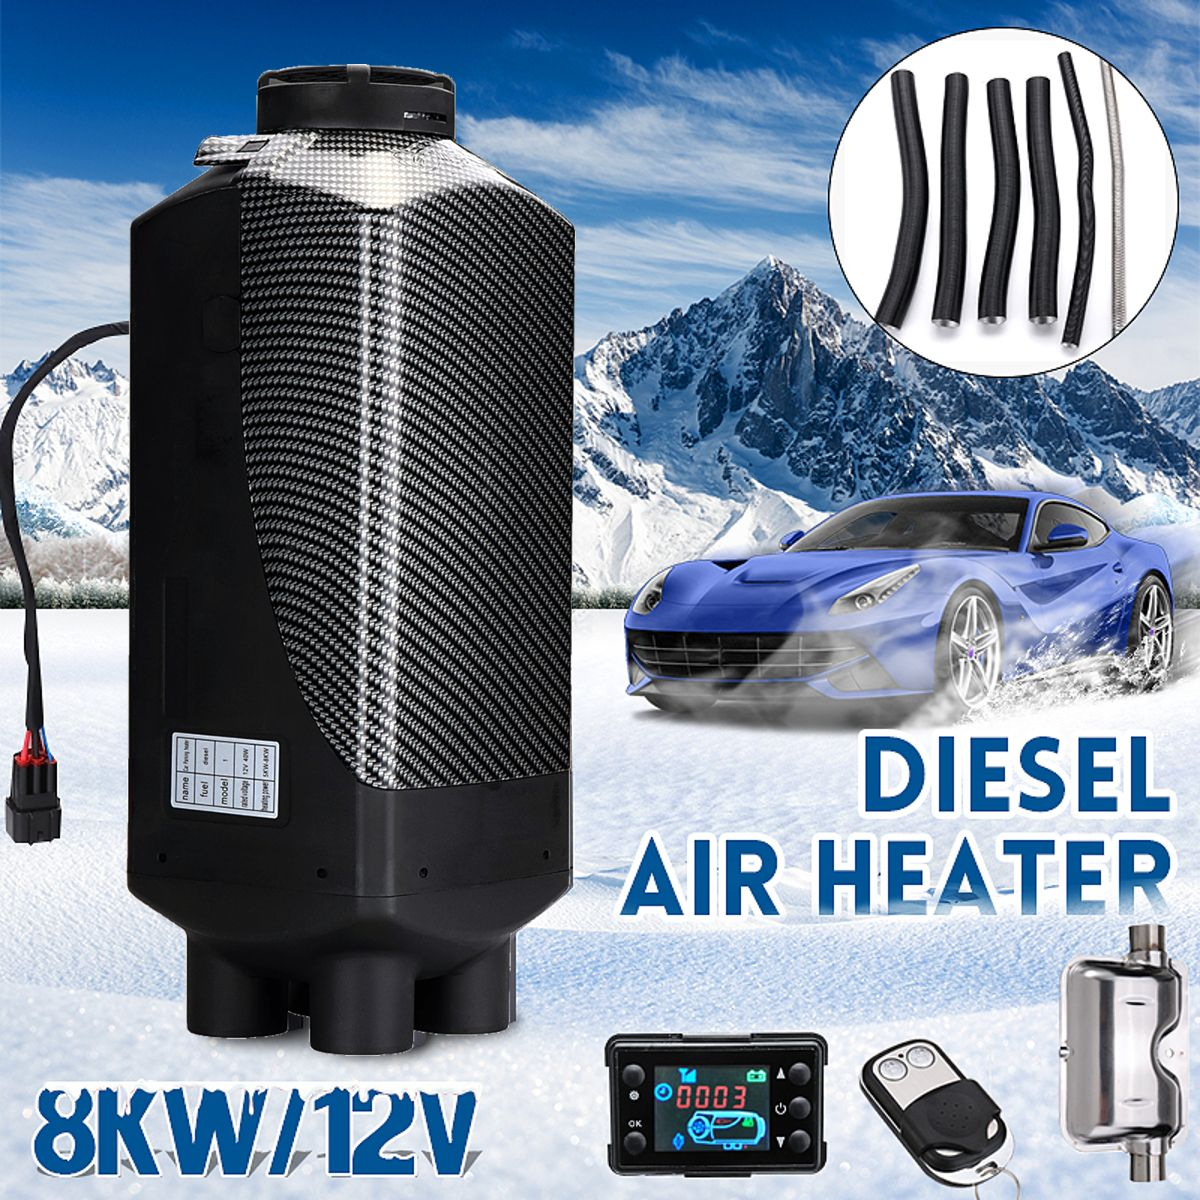 Car Heater 12V 8KW Parking Air Diesels Heater LCD Monitor 4 Hole with Remote Control + Silencer For Motorhome RV Trucks Bus Boat